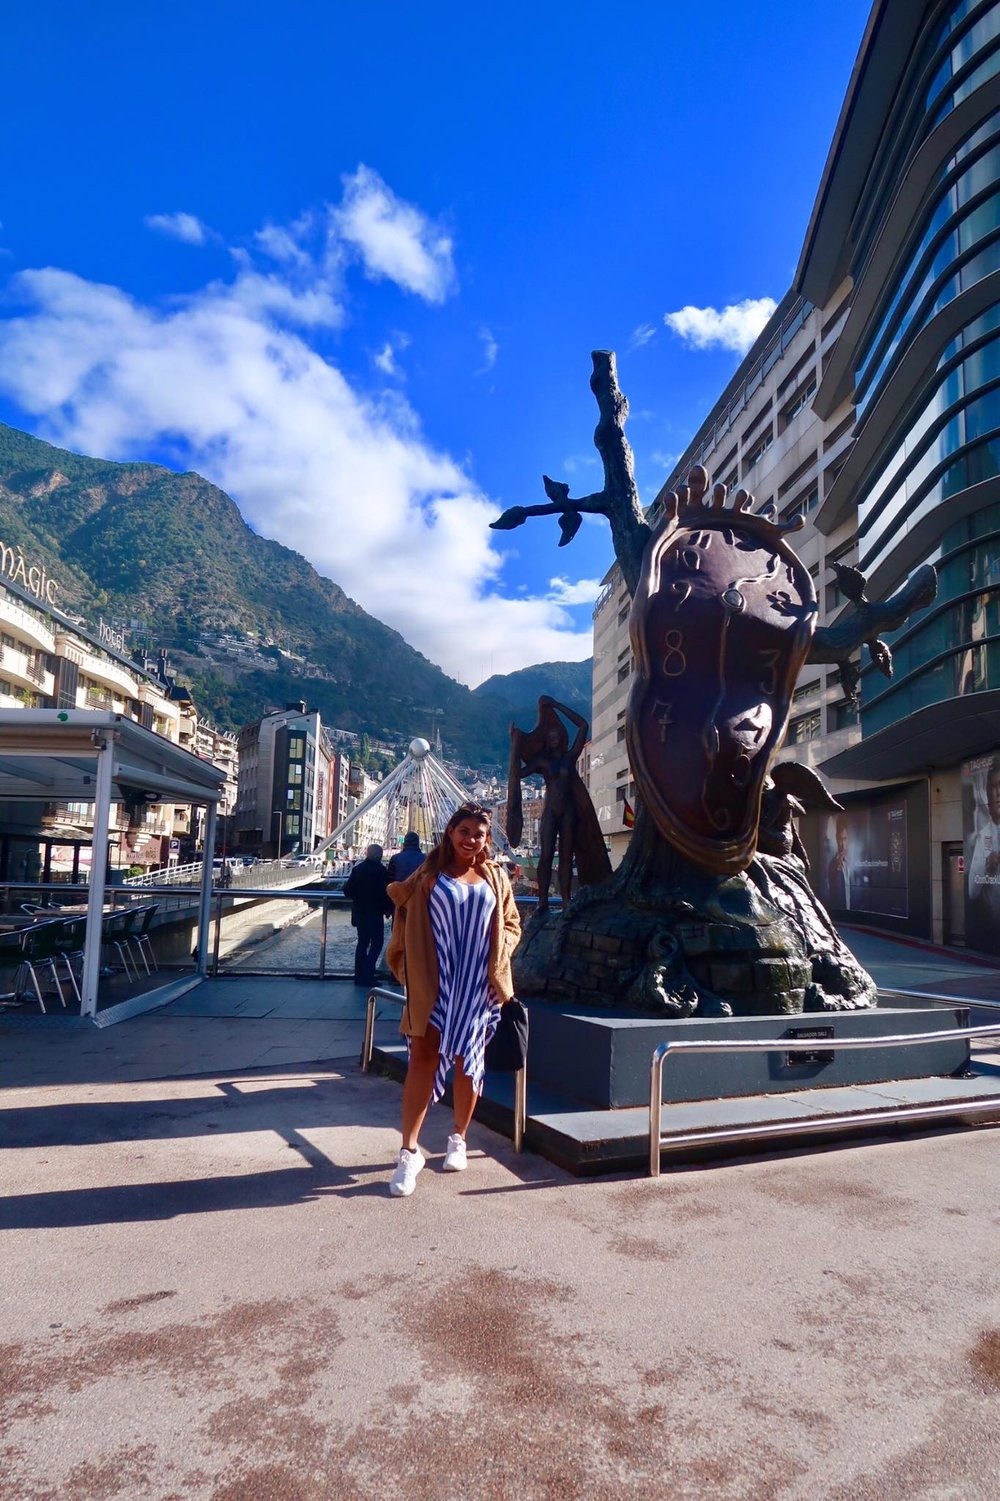 Kach Solo Travels Day 53: Hello from #ANDORRA! My country 117th 💋